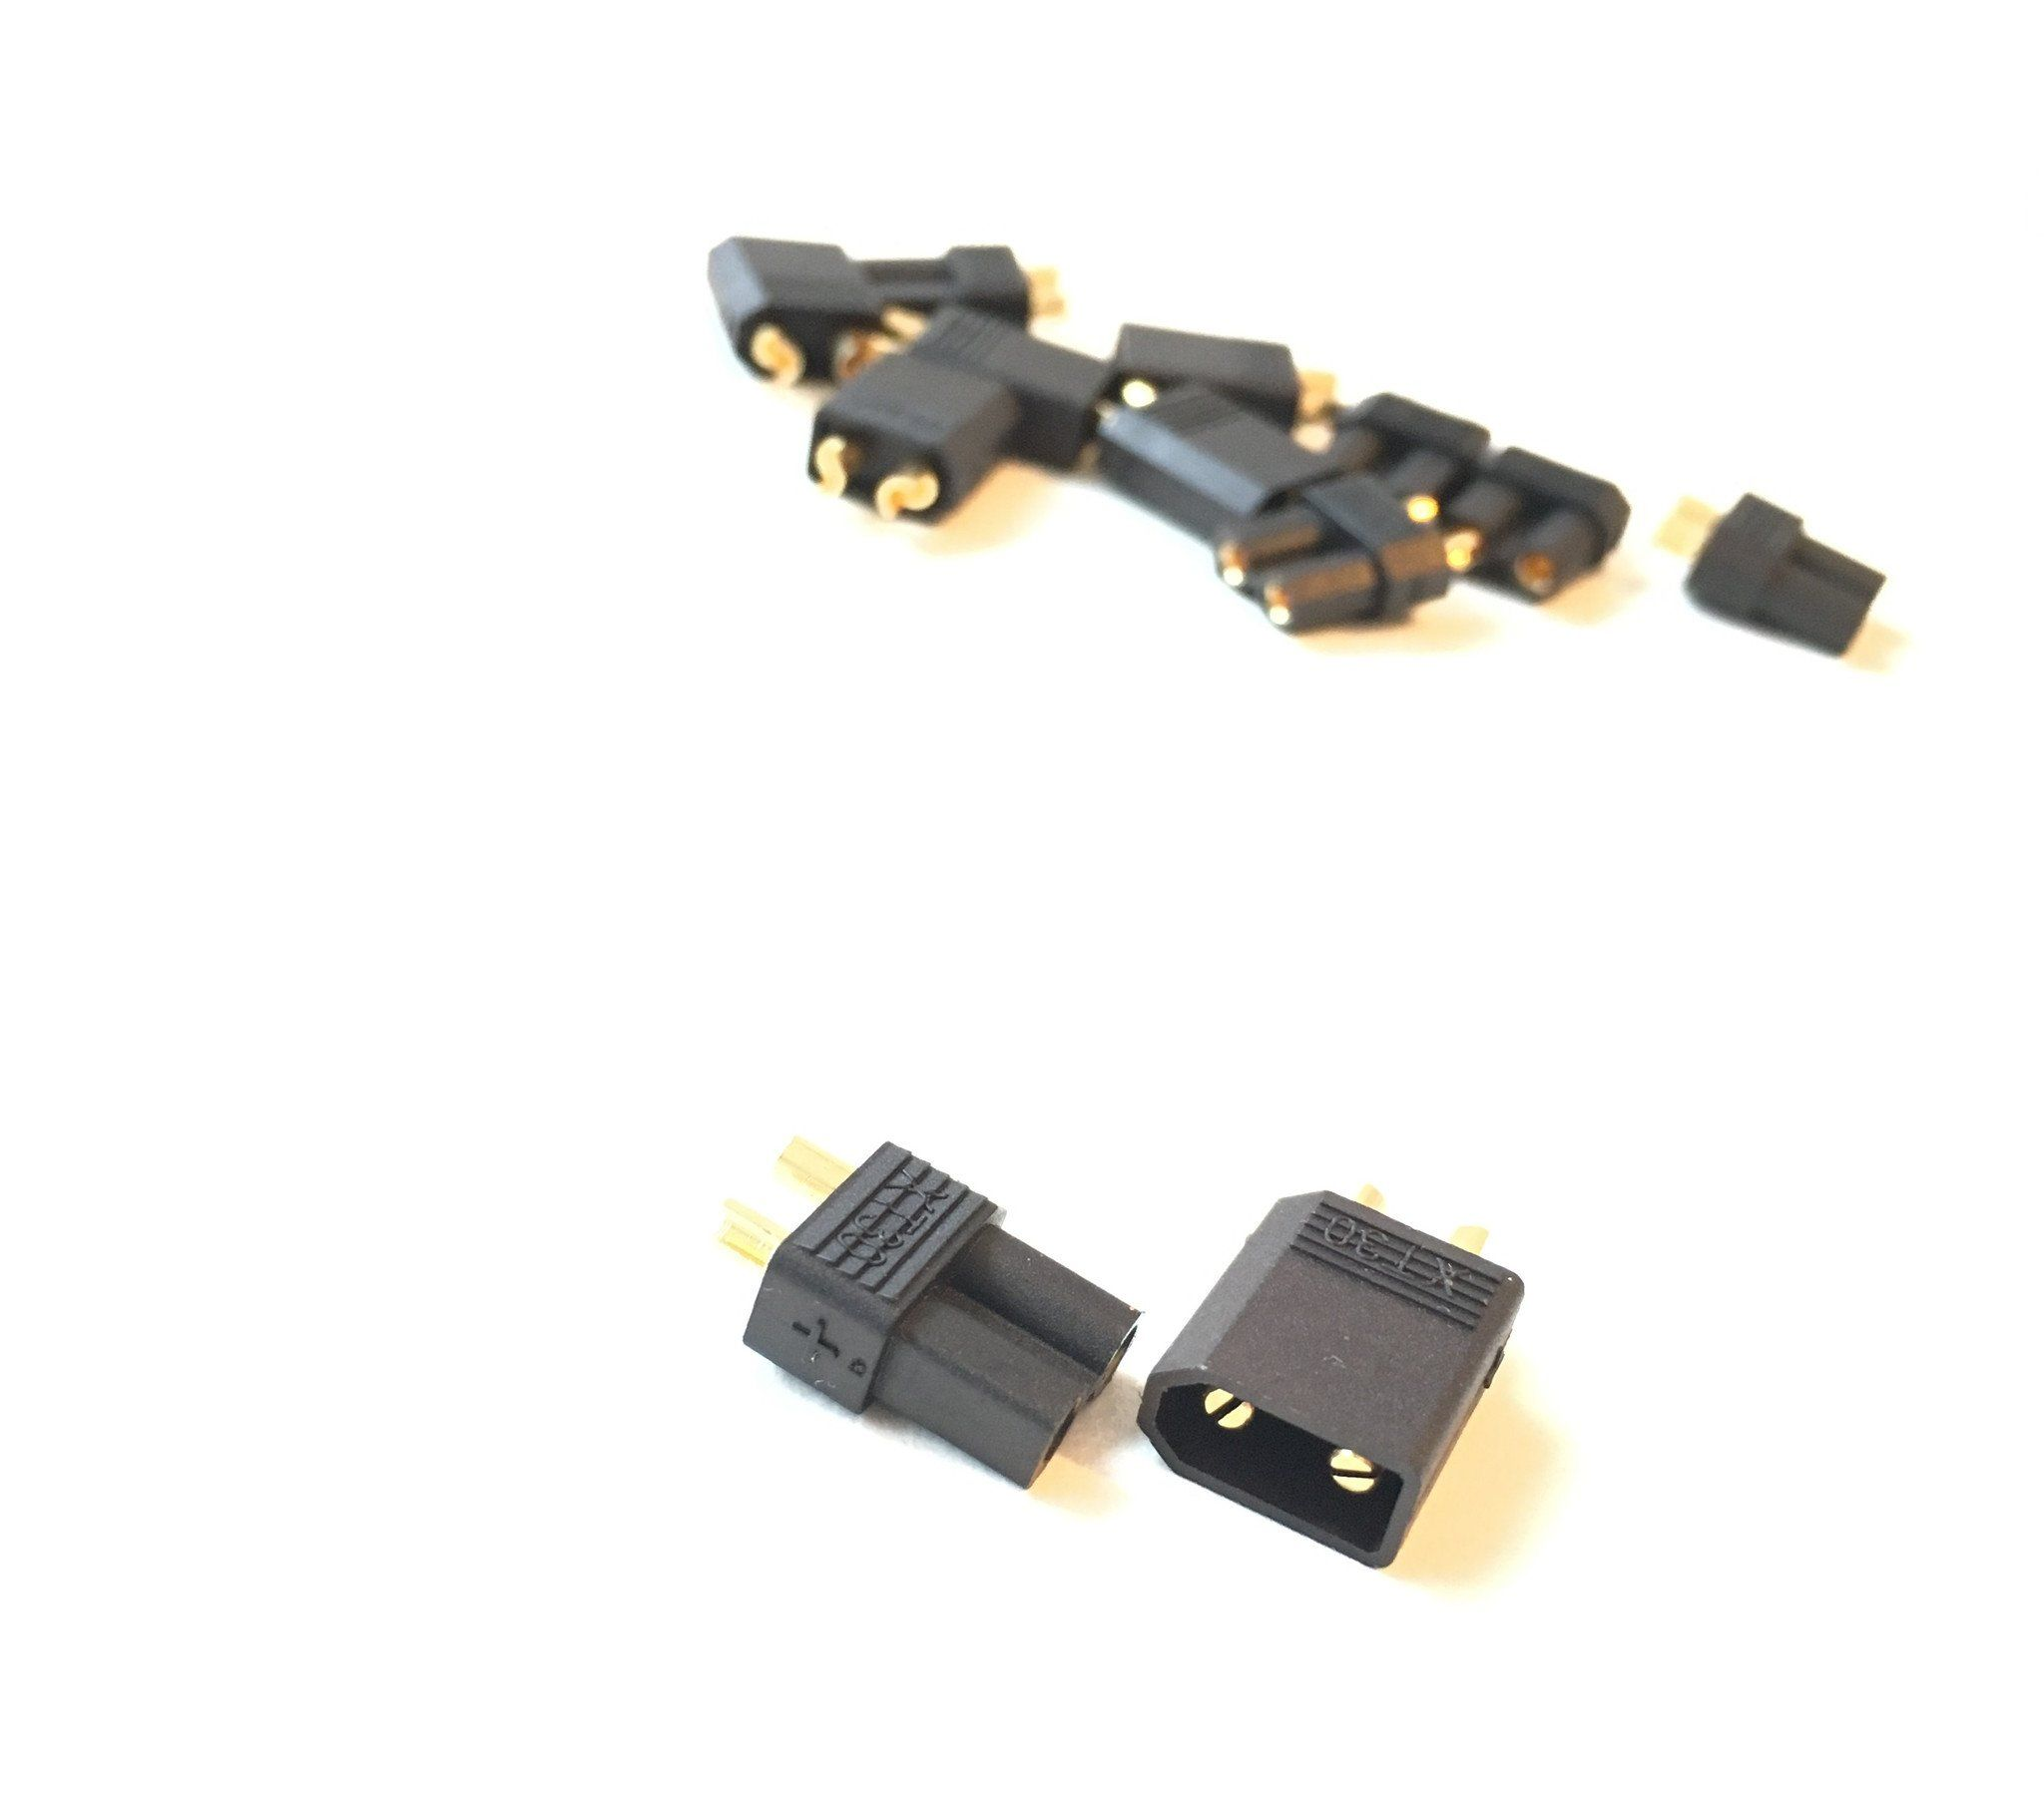 XT30 or XT60 Plugs (Black) AirBlade UAV